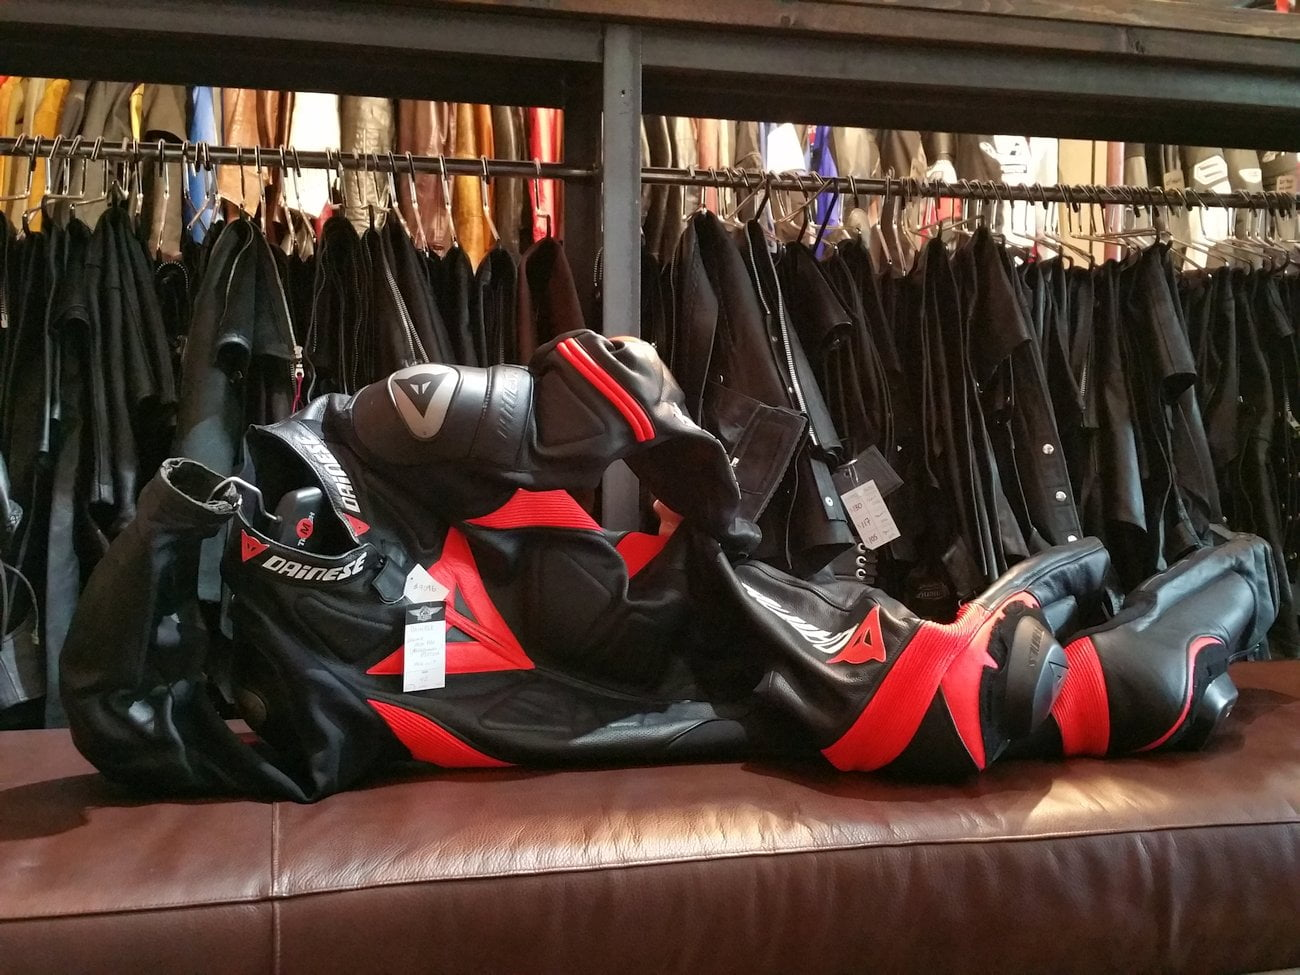 Racing Suits : Consignment is Limited